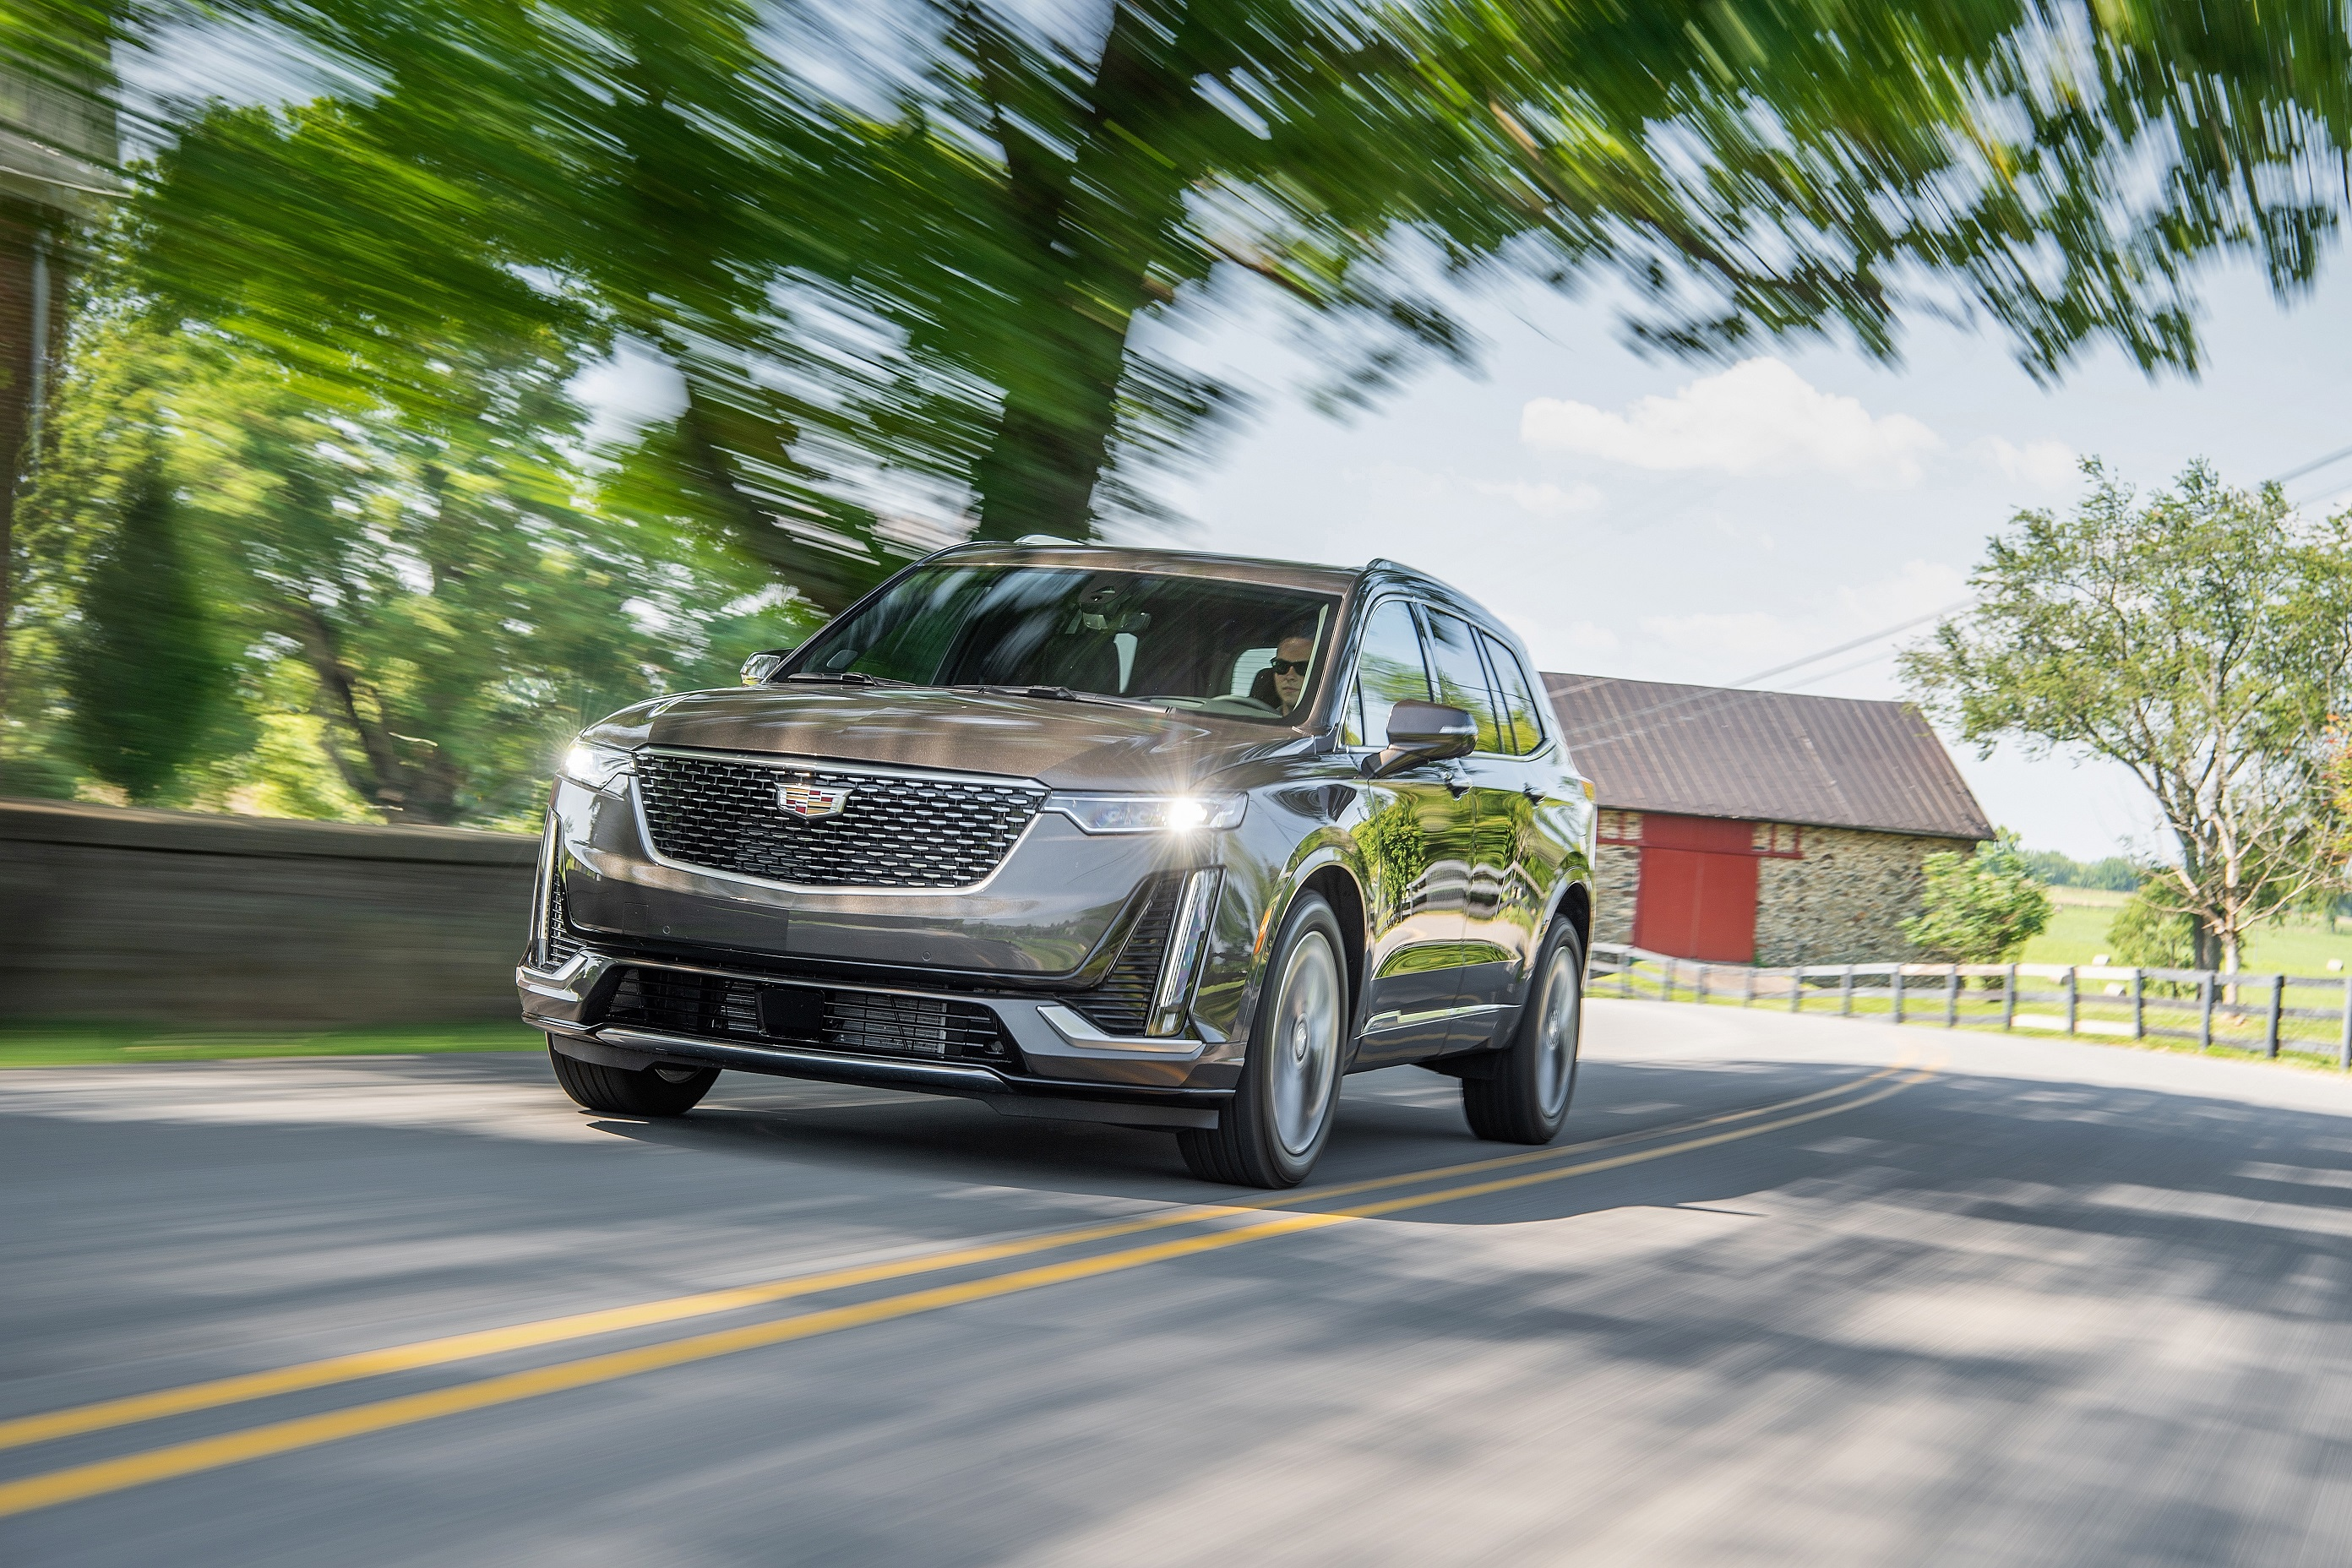 Cadillac Canada: New Products, Services Coming on Board